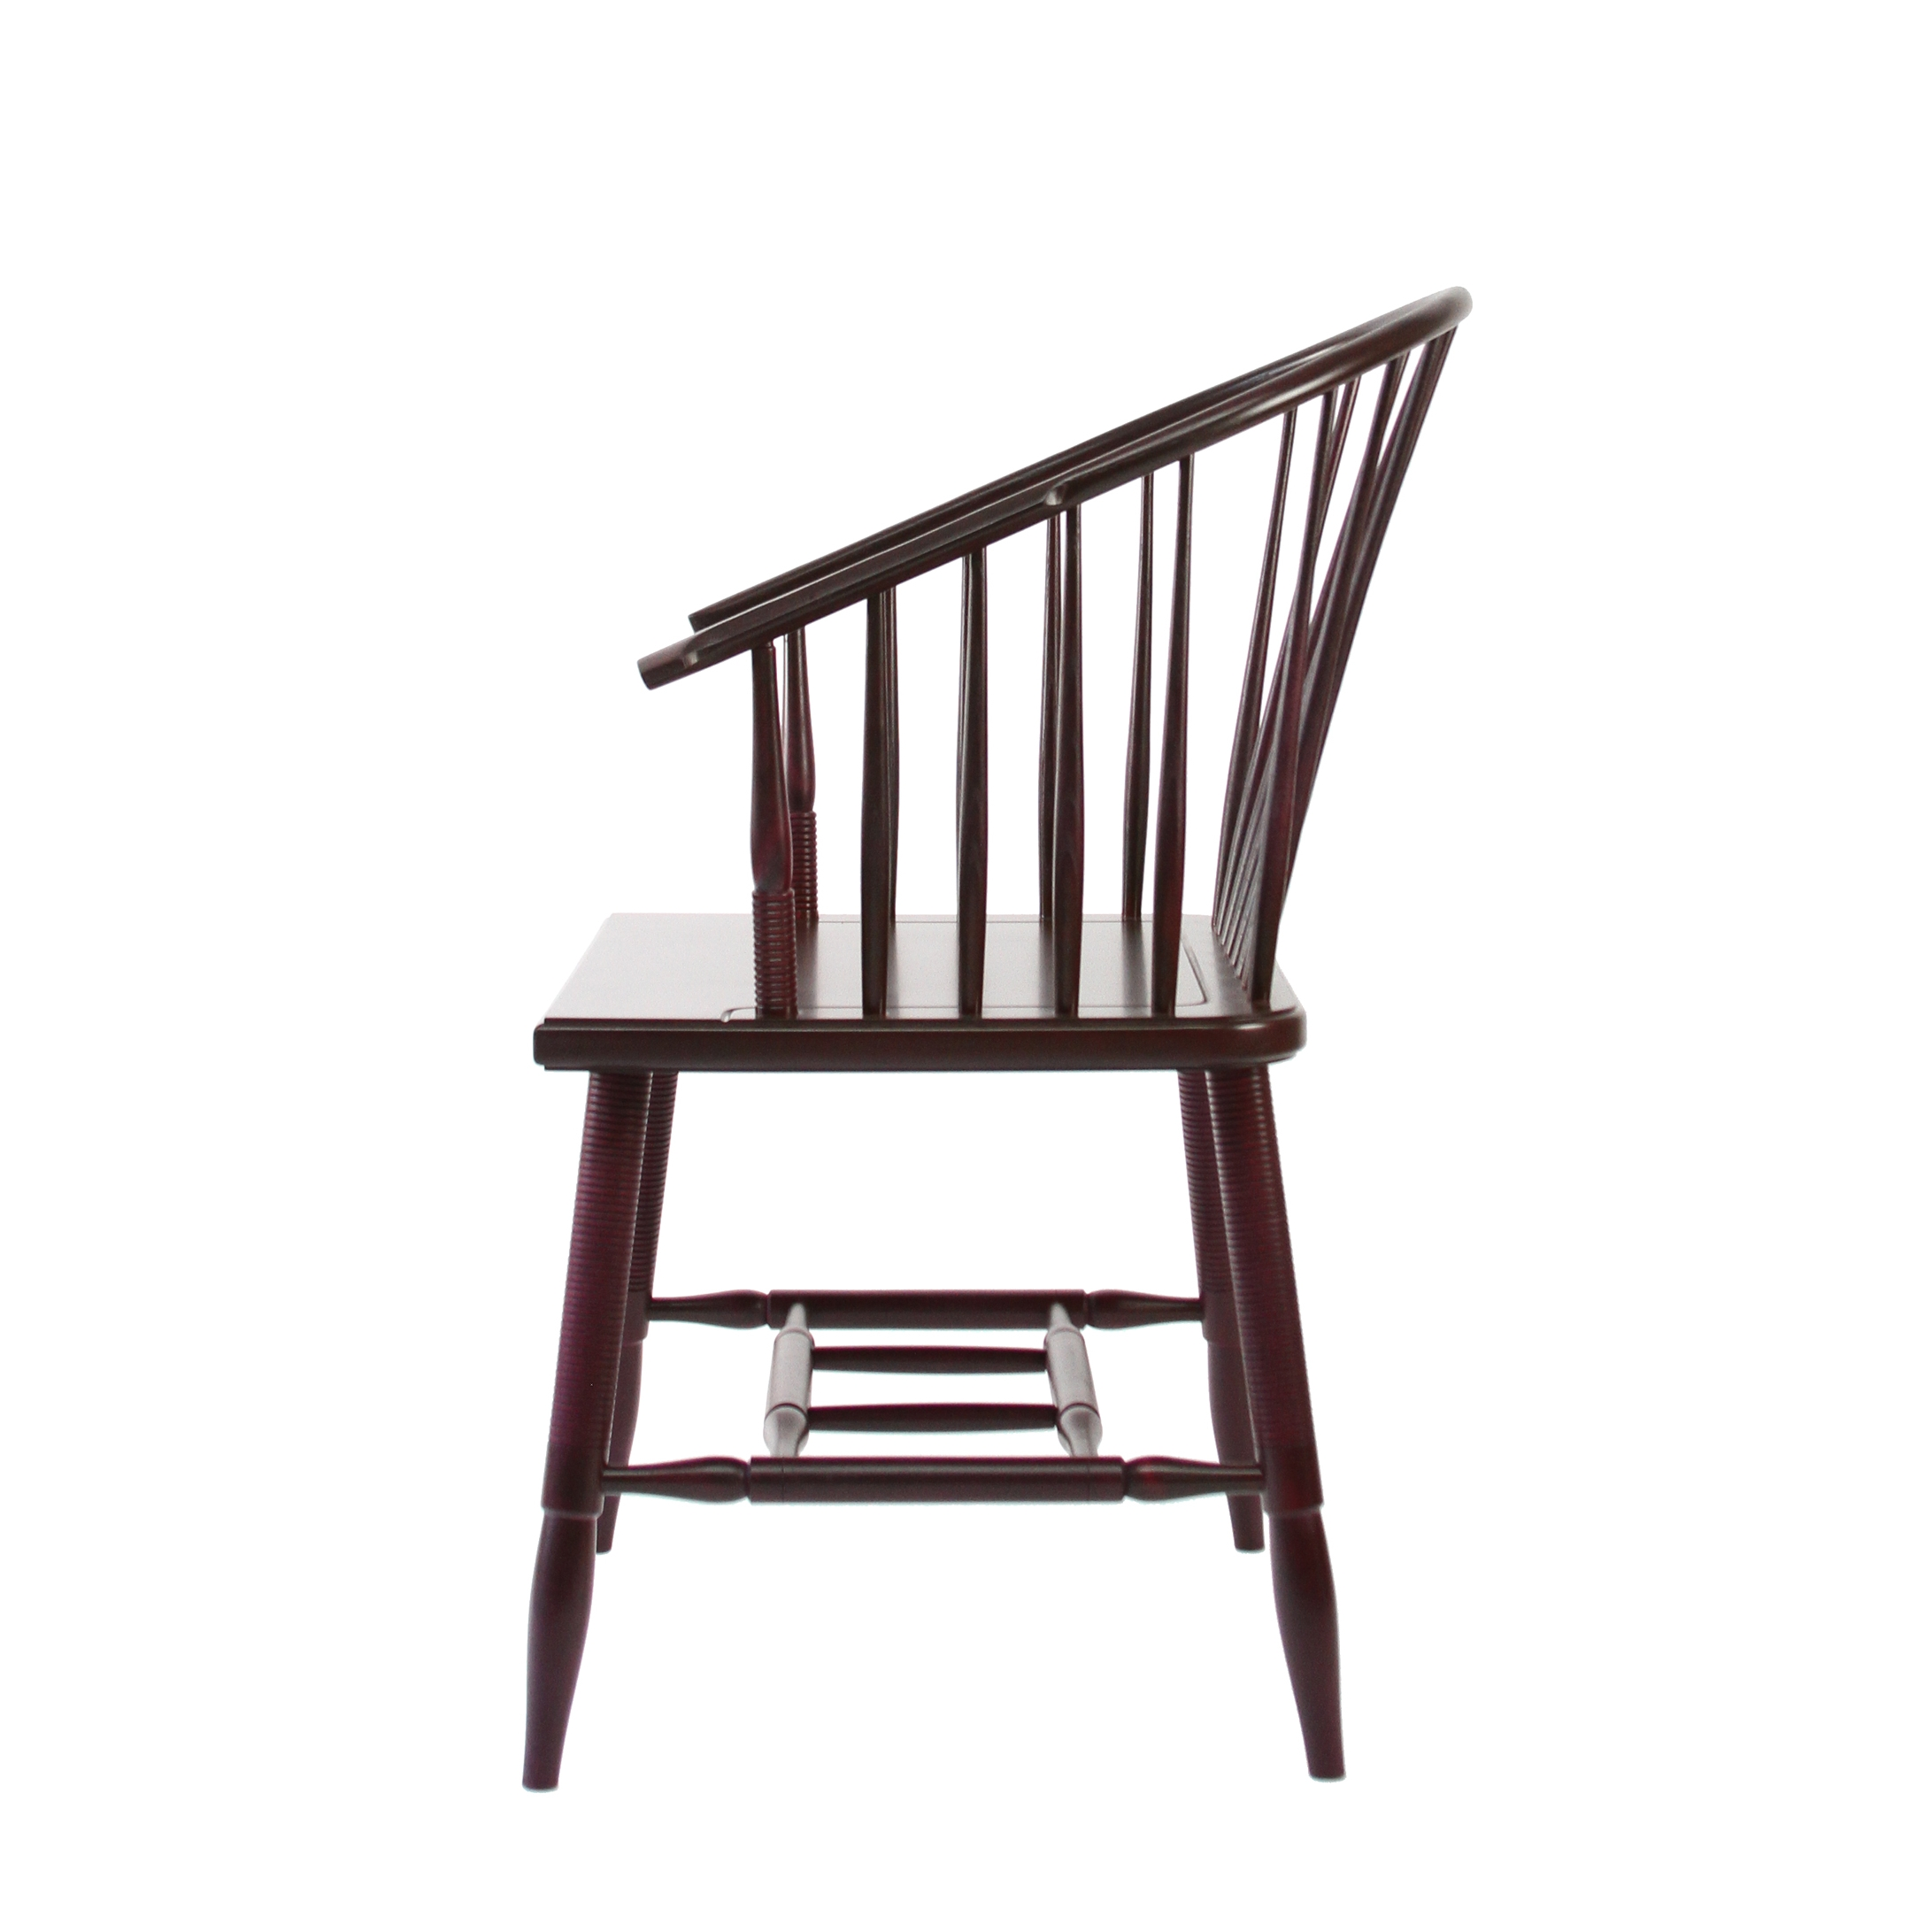 O&G Studio Horseshoe Chinese Armchair Windsor Contemporary Side Dining Chair  Modern Andrew Mau Designed Design Interior Braced Seating Ebonized Maple Black Beet Stained Stain